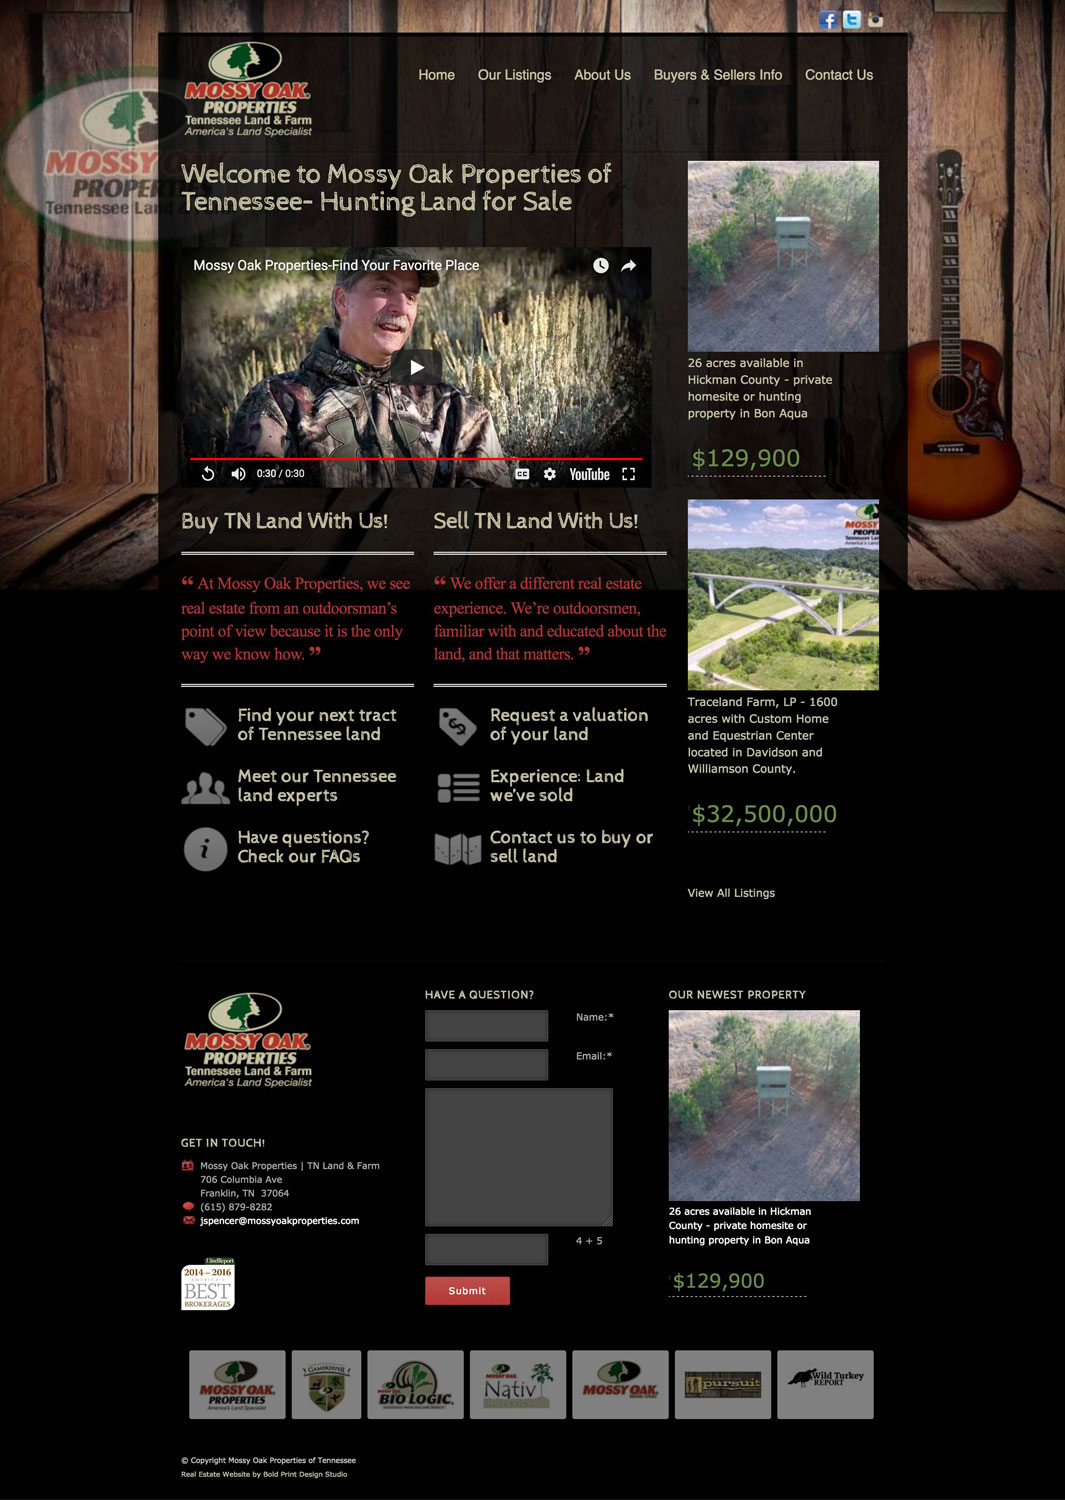 Mossy Oak Properties of Tennessee